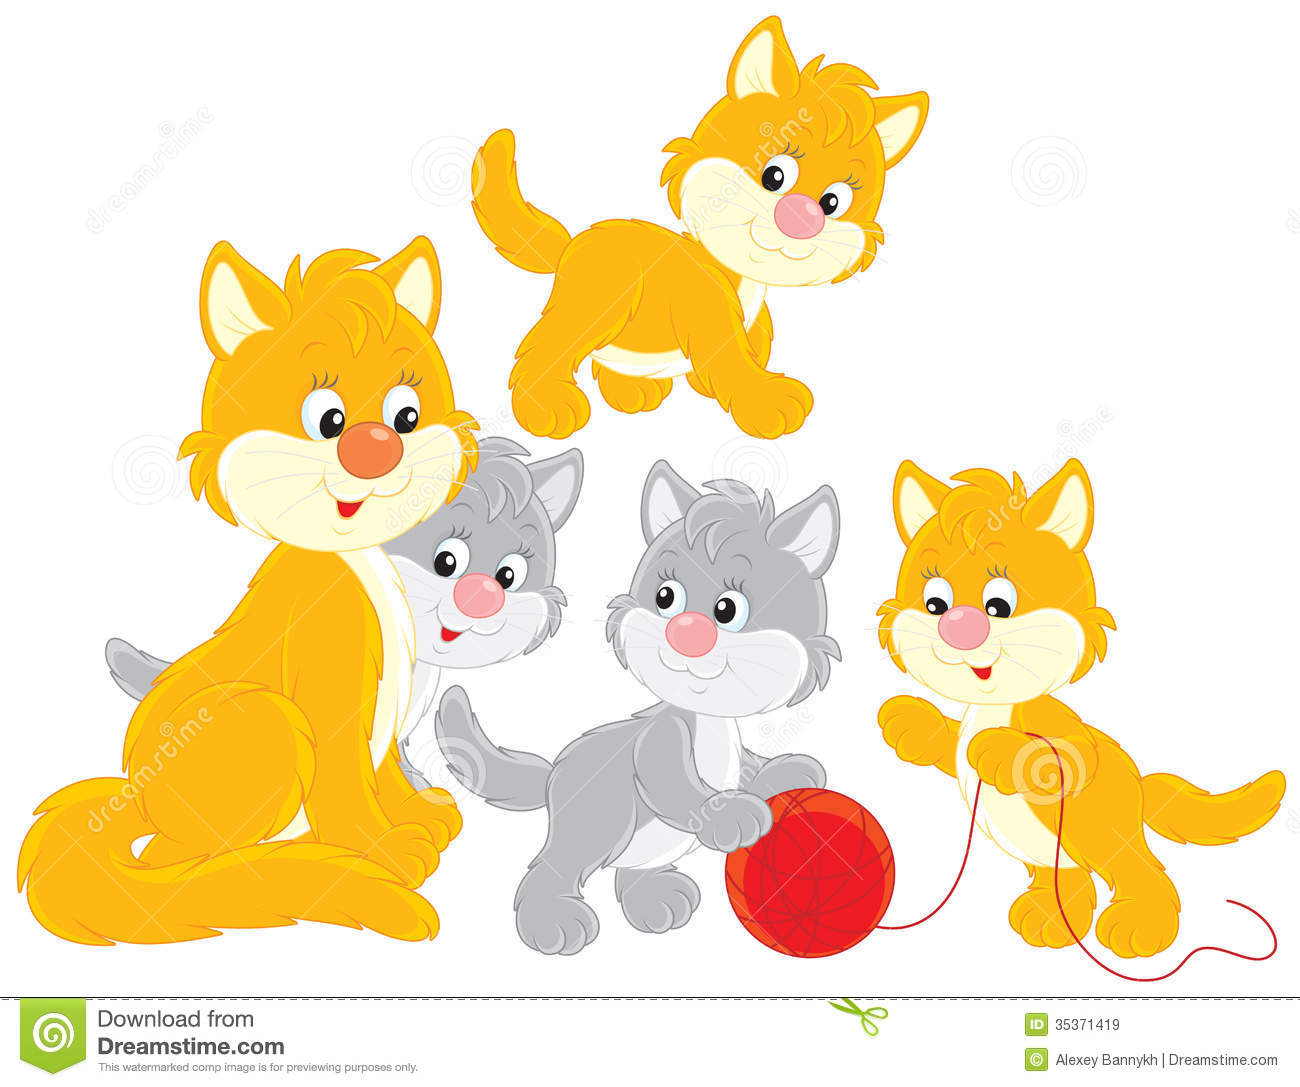 Kittens Clip Art Stock Photos, Images, & Pictures.